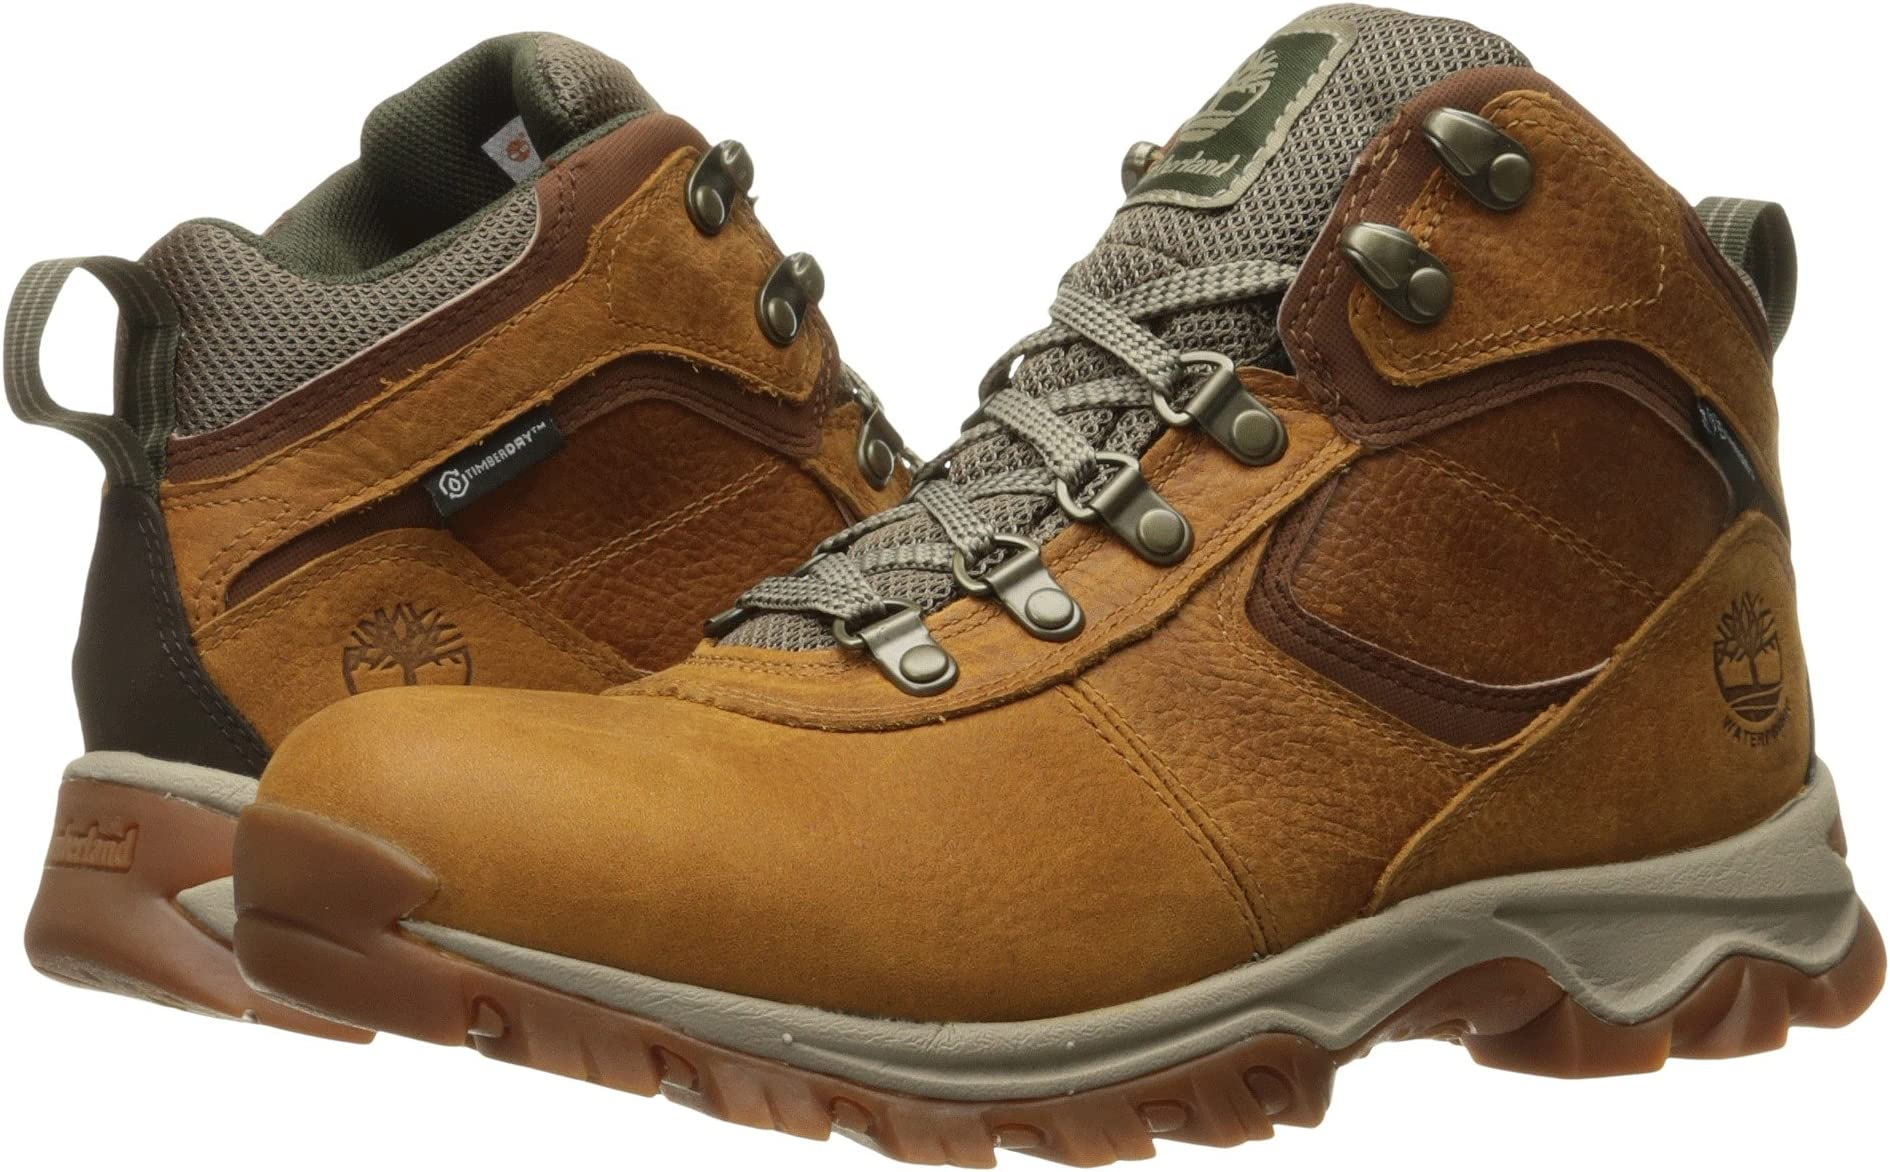 a8c289427e7 Timberland Boots & Shoes | Shipped FREE at Zappos | Zappos.com